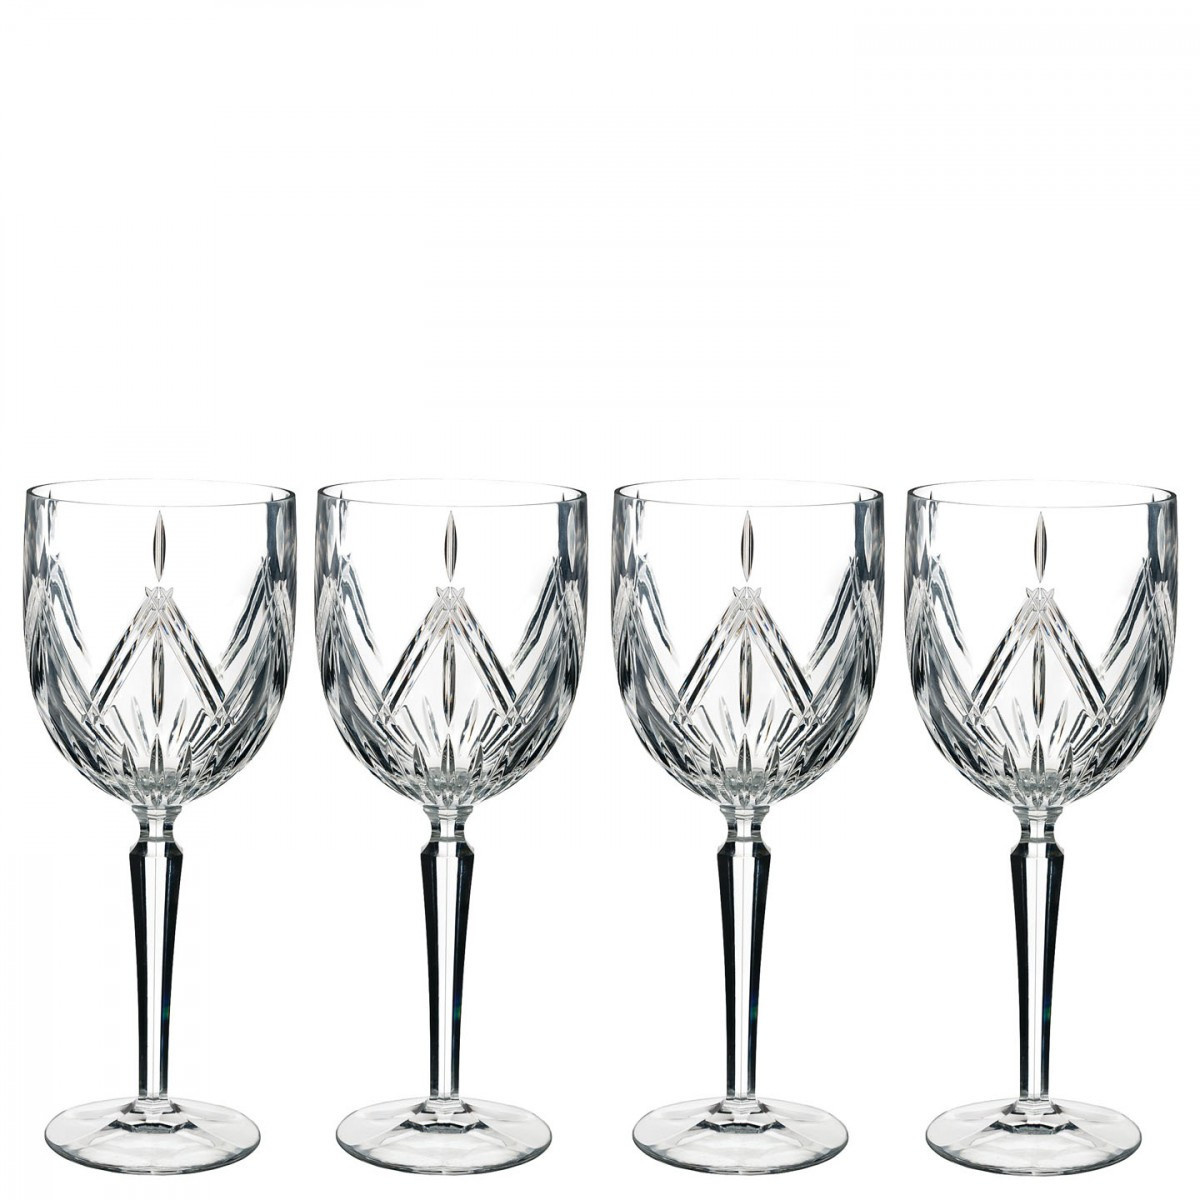 Marquis by Waterford Rainfall Vase 11 Of Marquis Lacey Wine Set Of 4 Waterforda Crystal with Regard to Marquis Lacey Wine Set Of 4